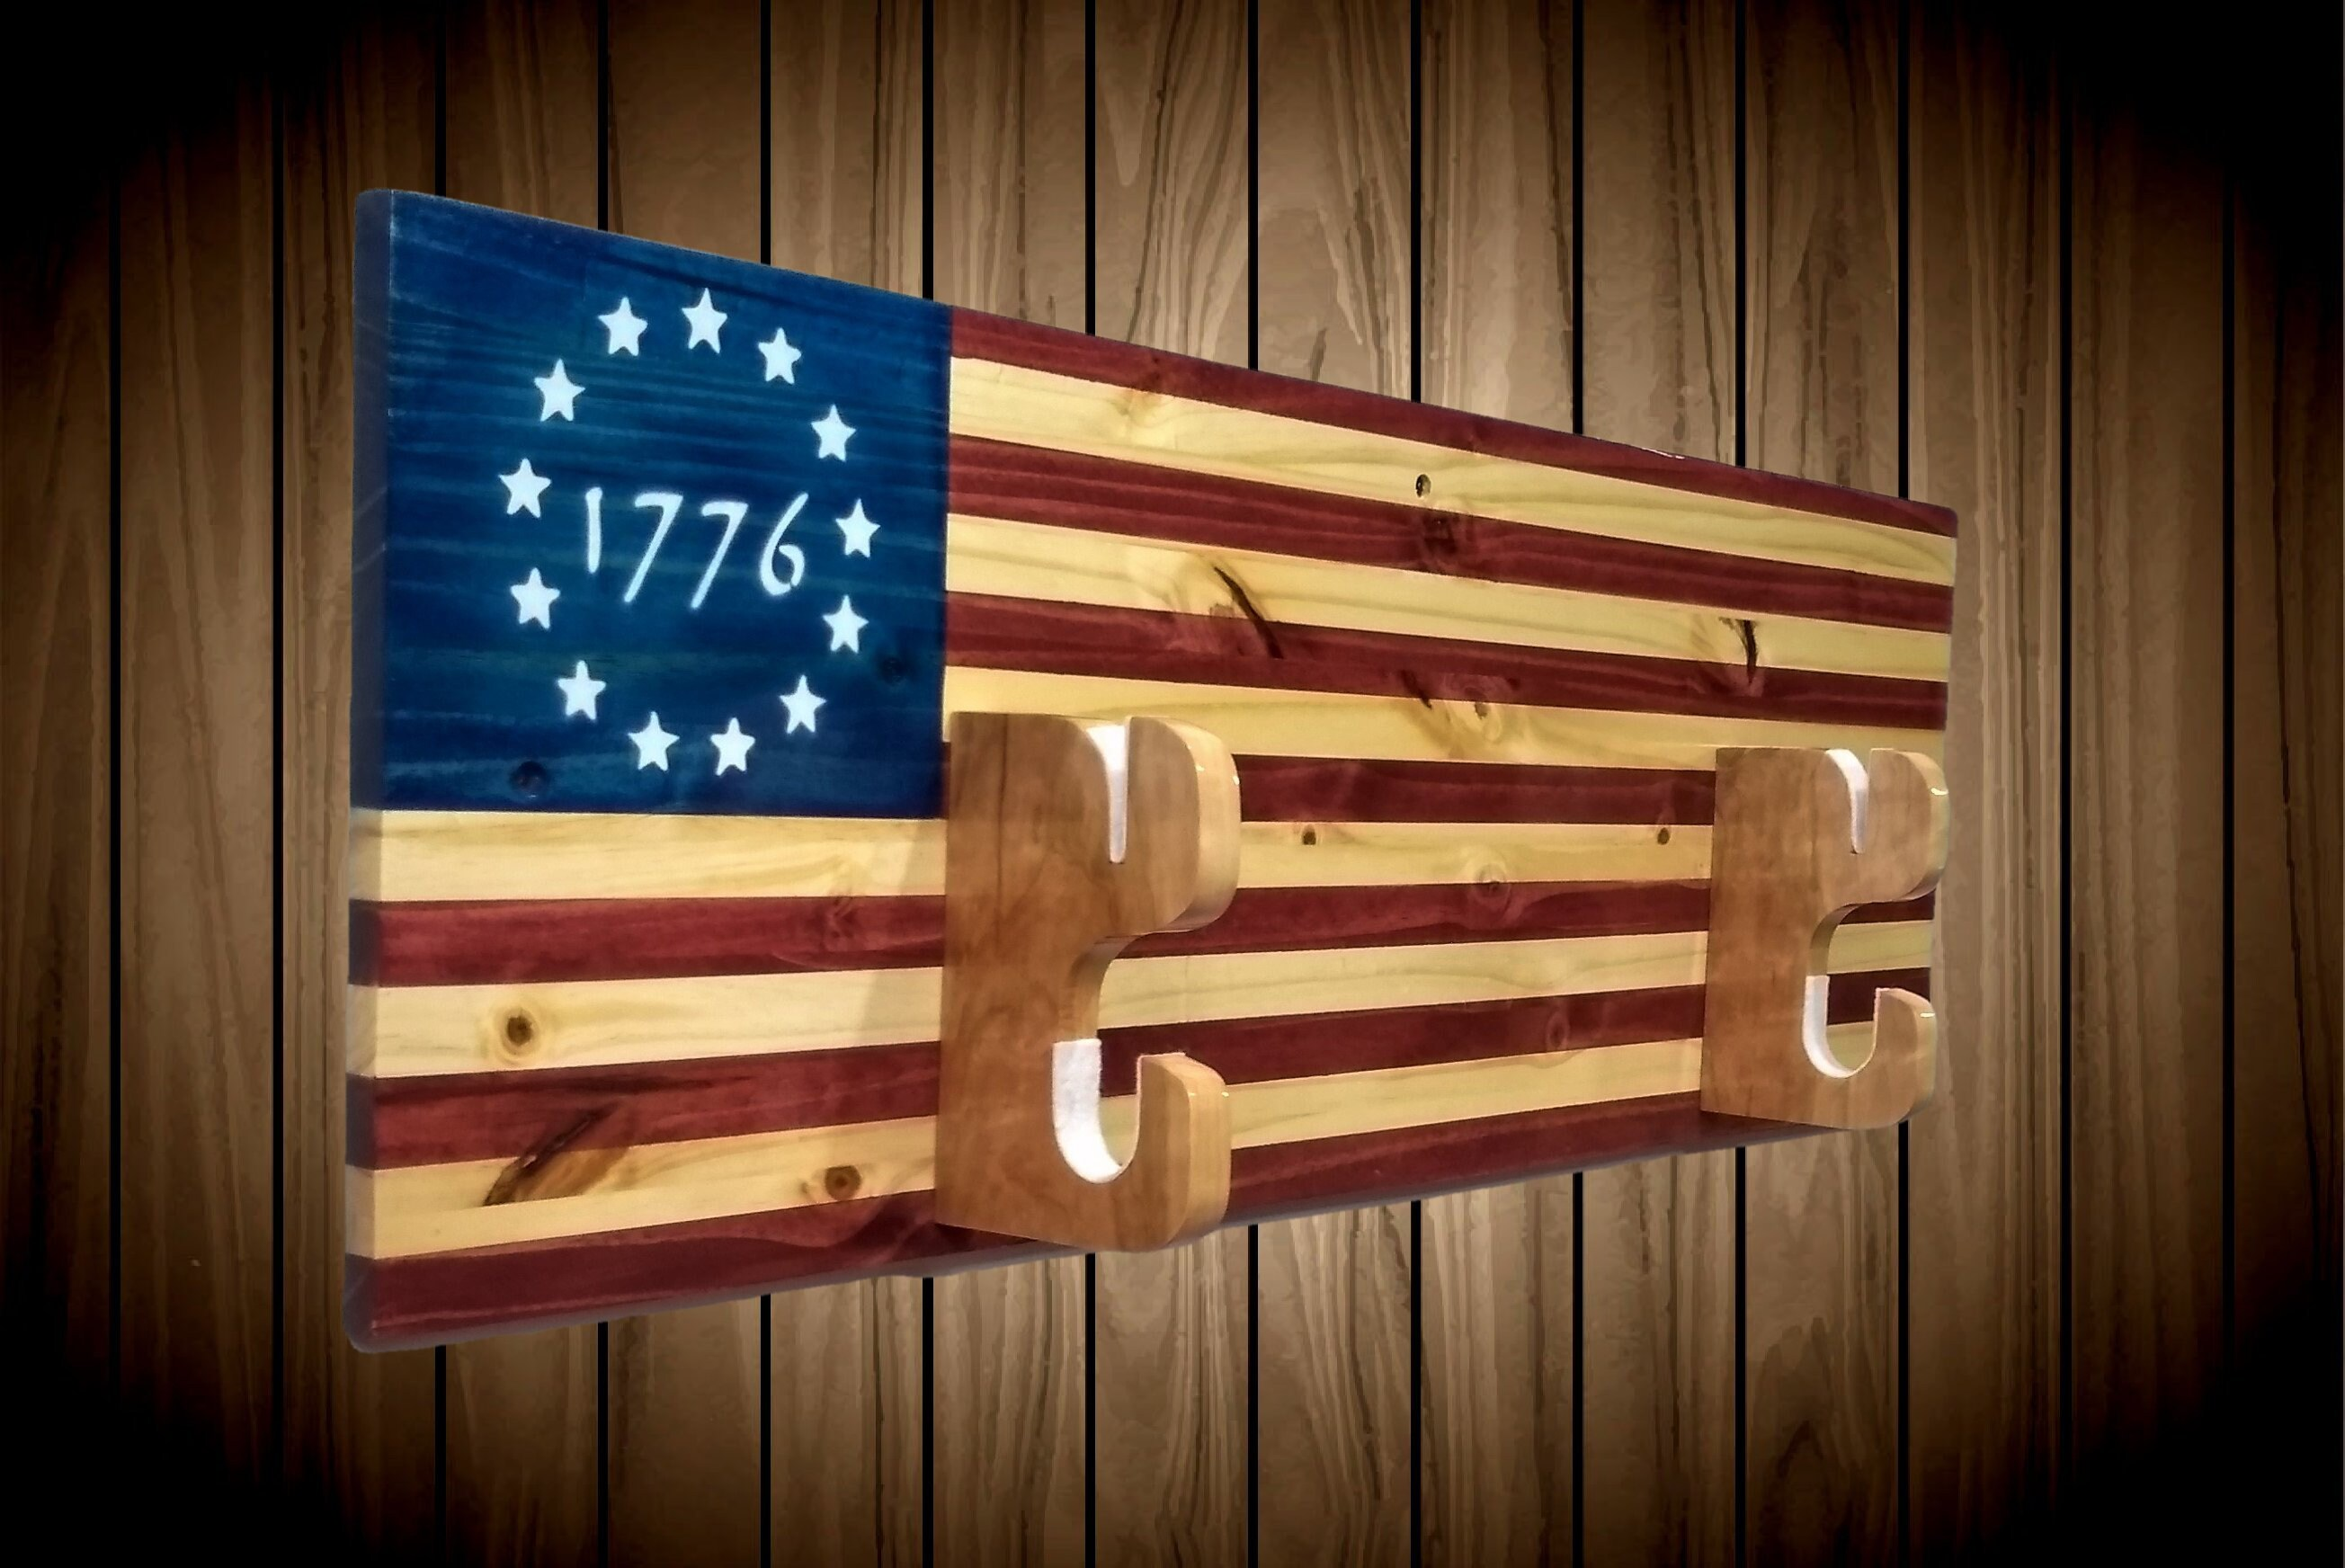 Custom 1776 Flag Military Sword Rack Display, Wall Mount